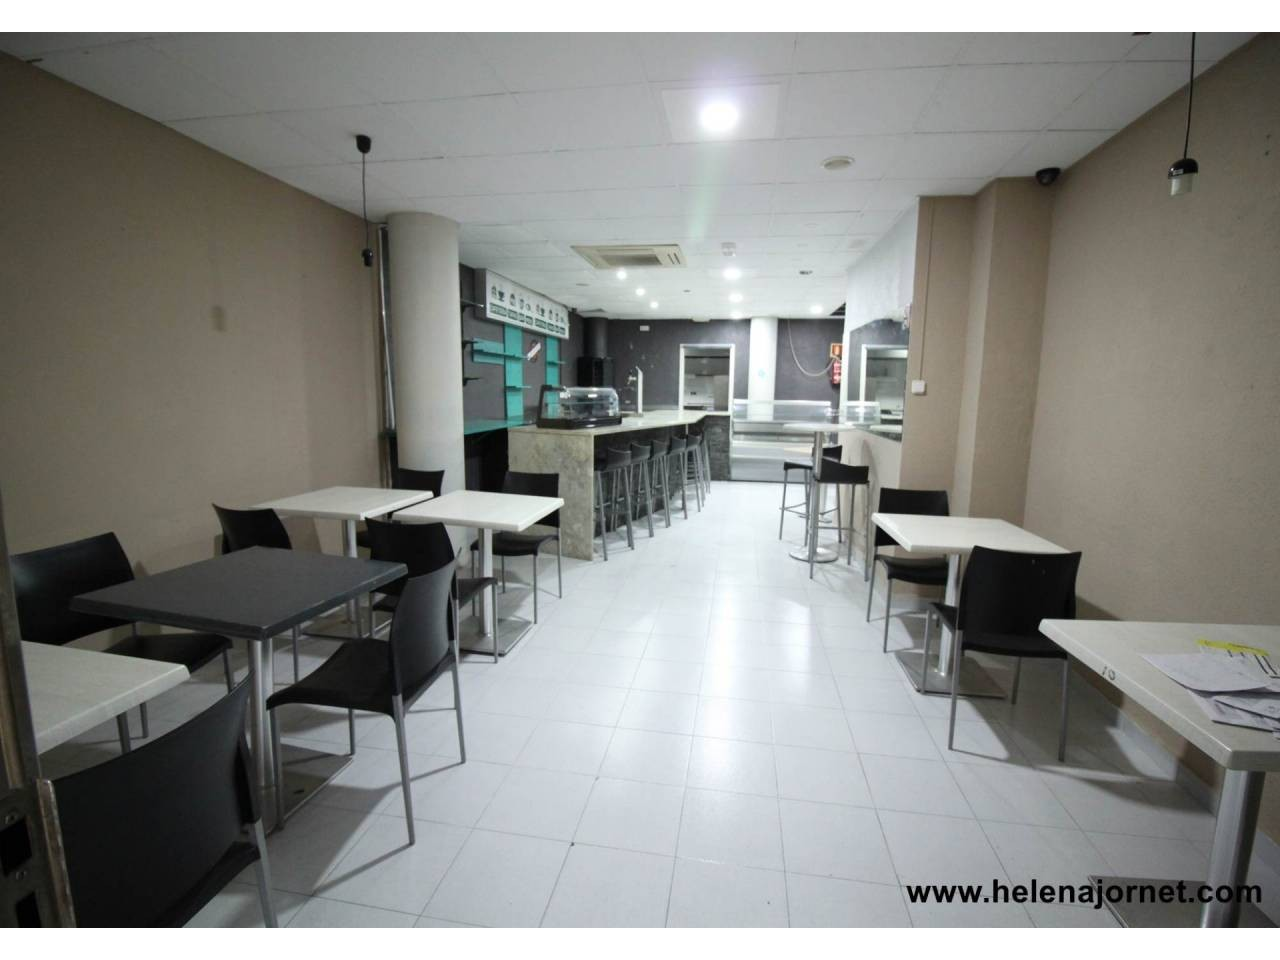 Restaurant with terrace in great emplacement - 4157